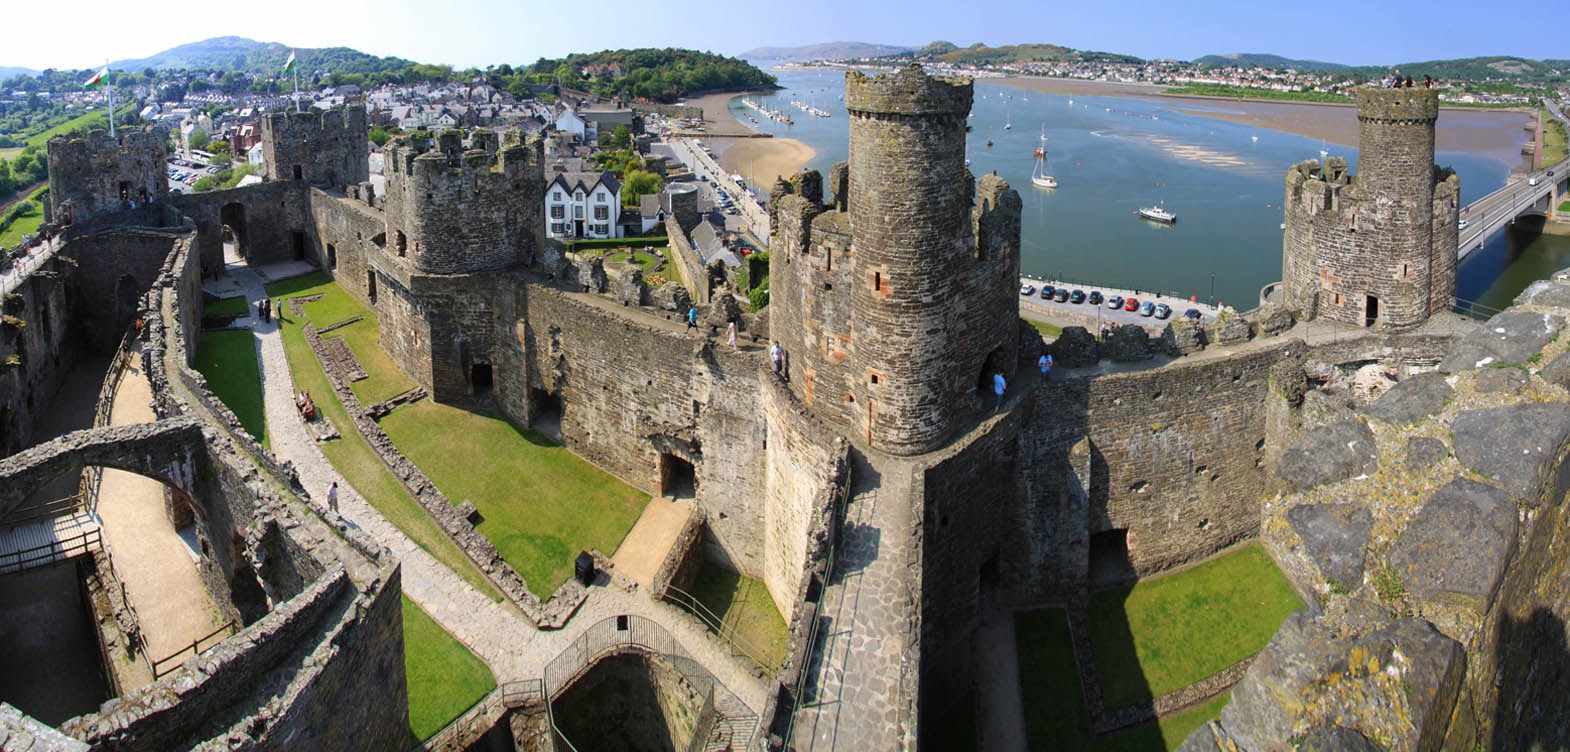 the importance of king edwards capturing of the conwy castle in 1243